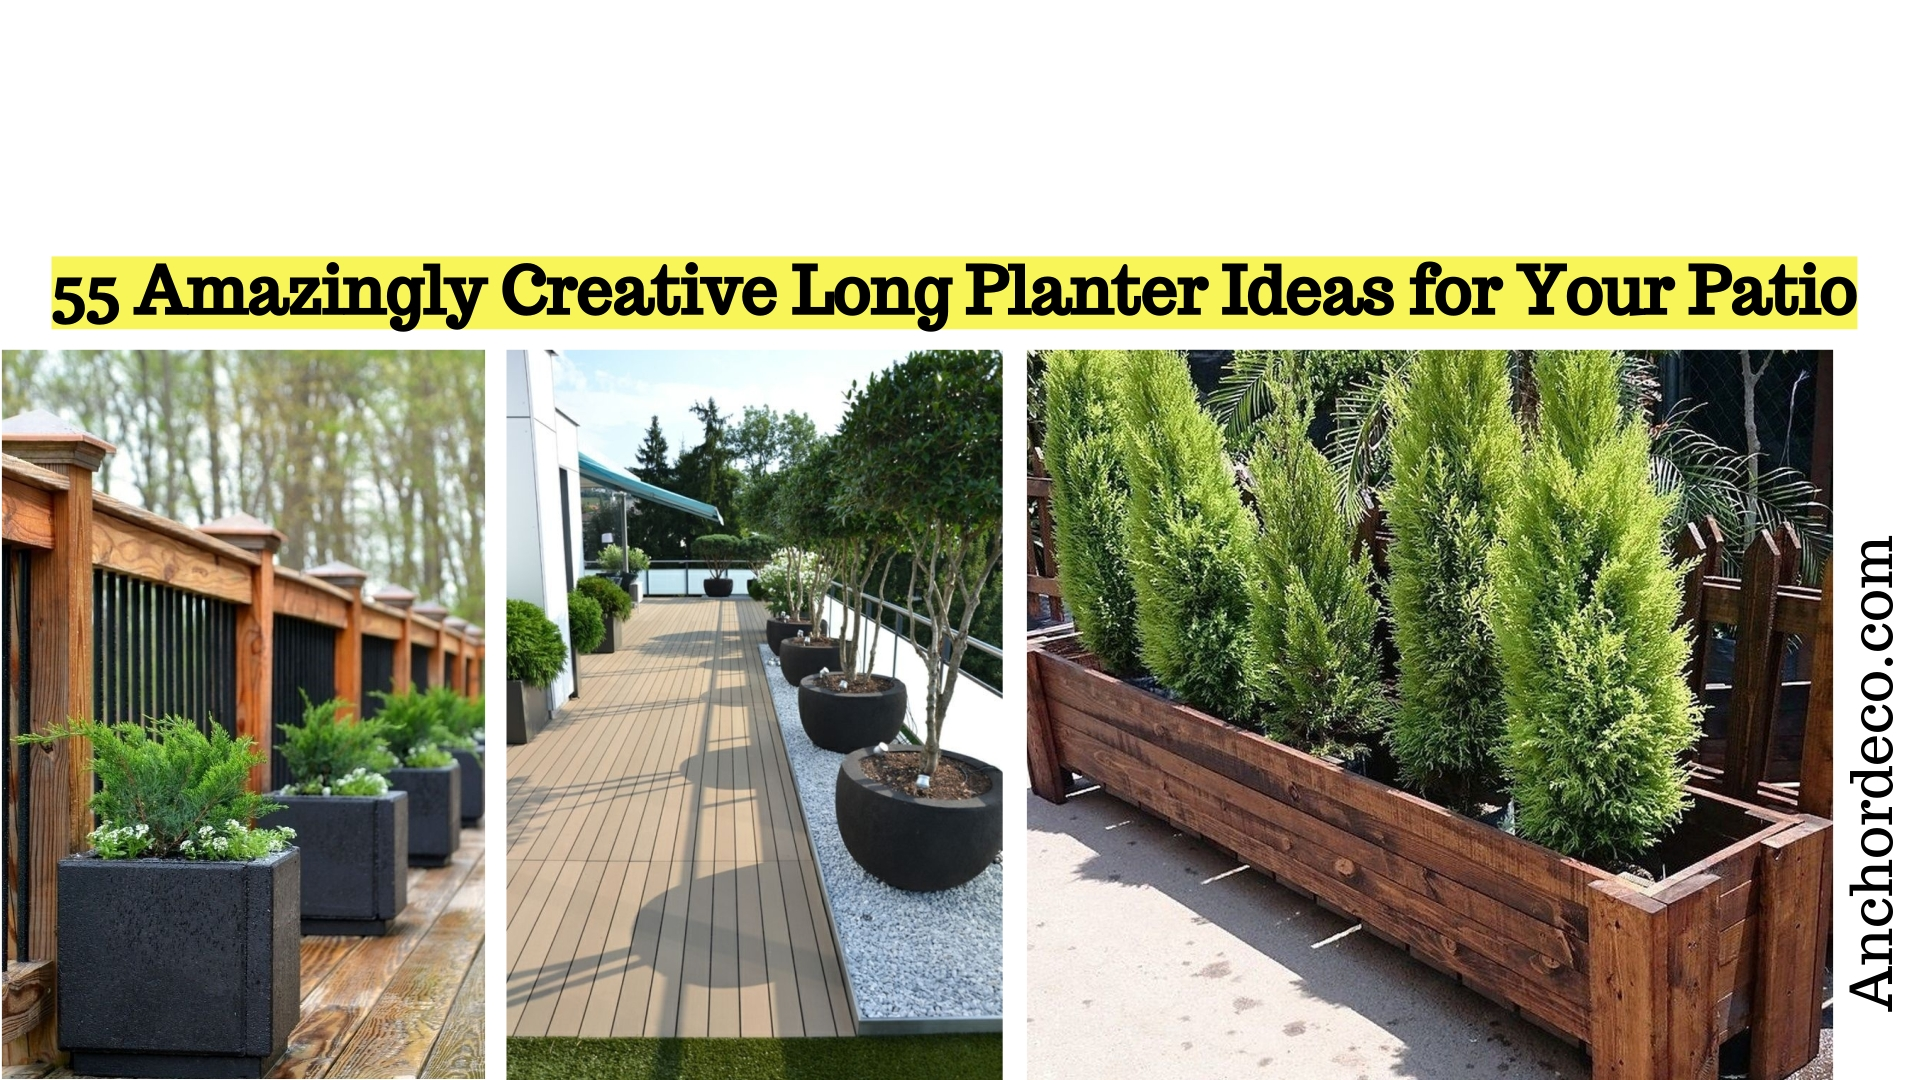 55 Amazingly Creative Long Planter Ideas for Your Patio ... on Long Patio Ideas id=40417